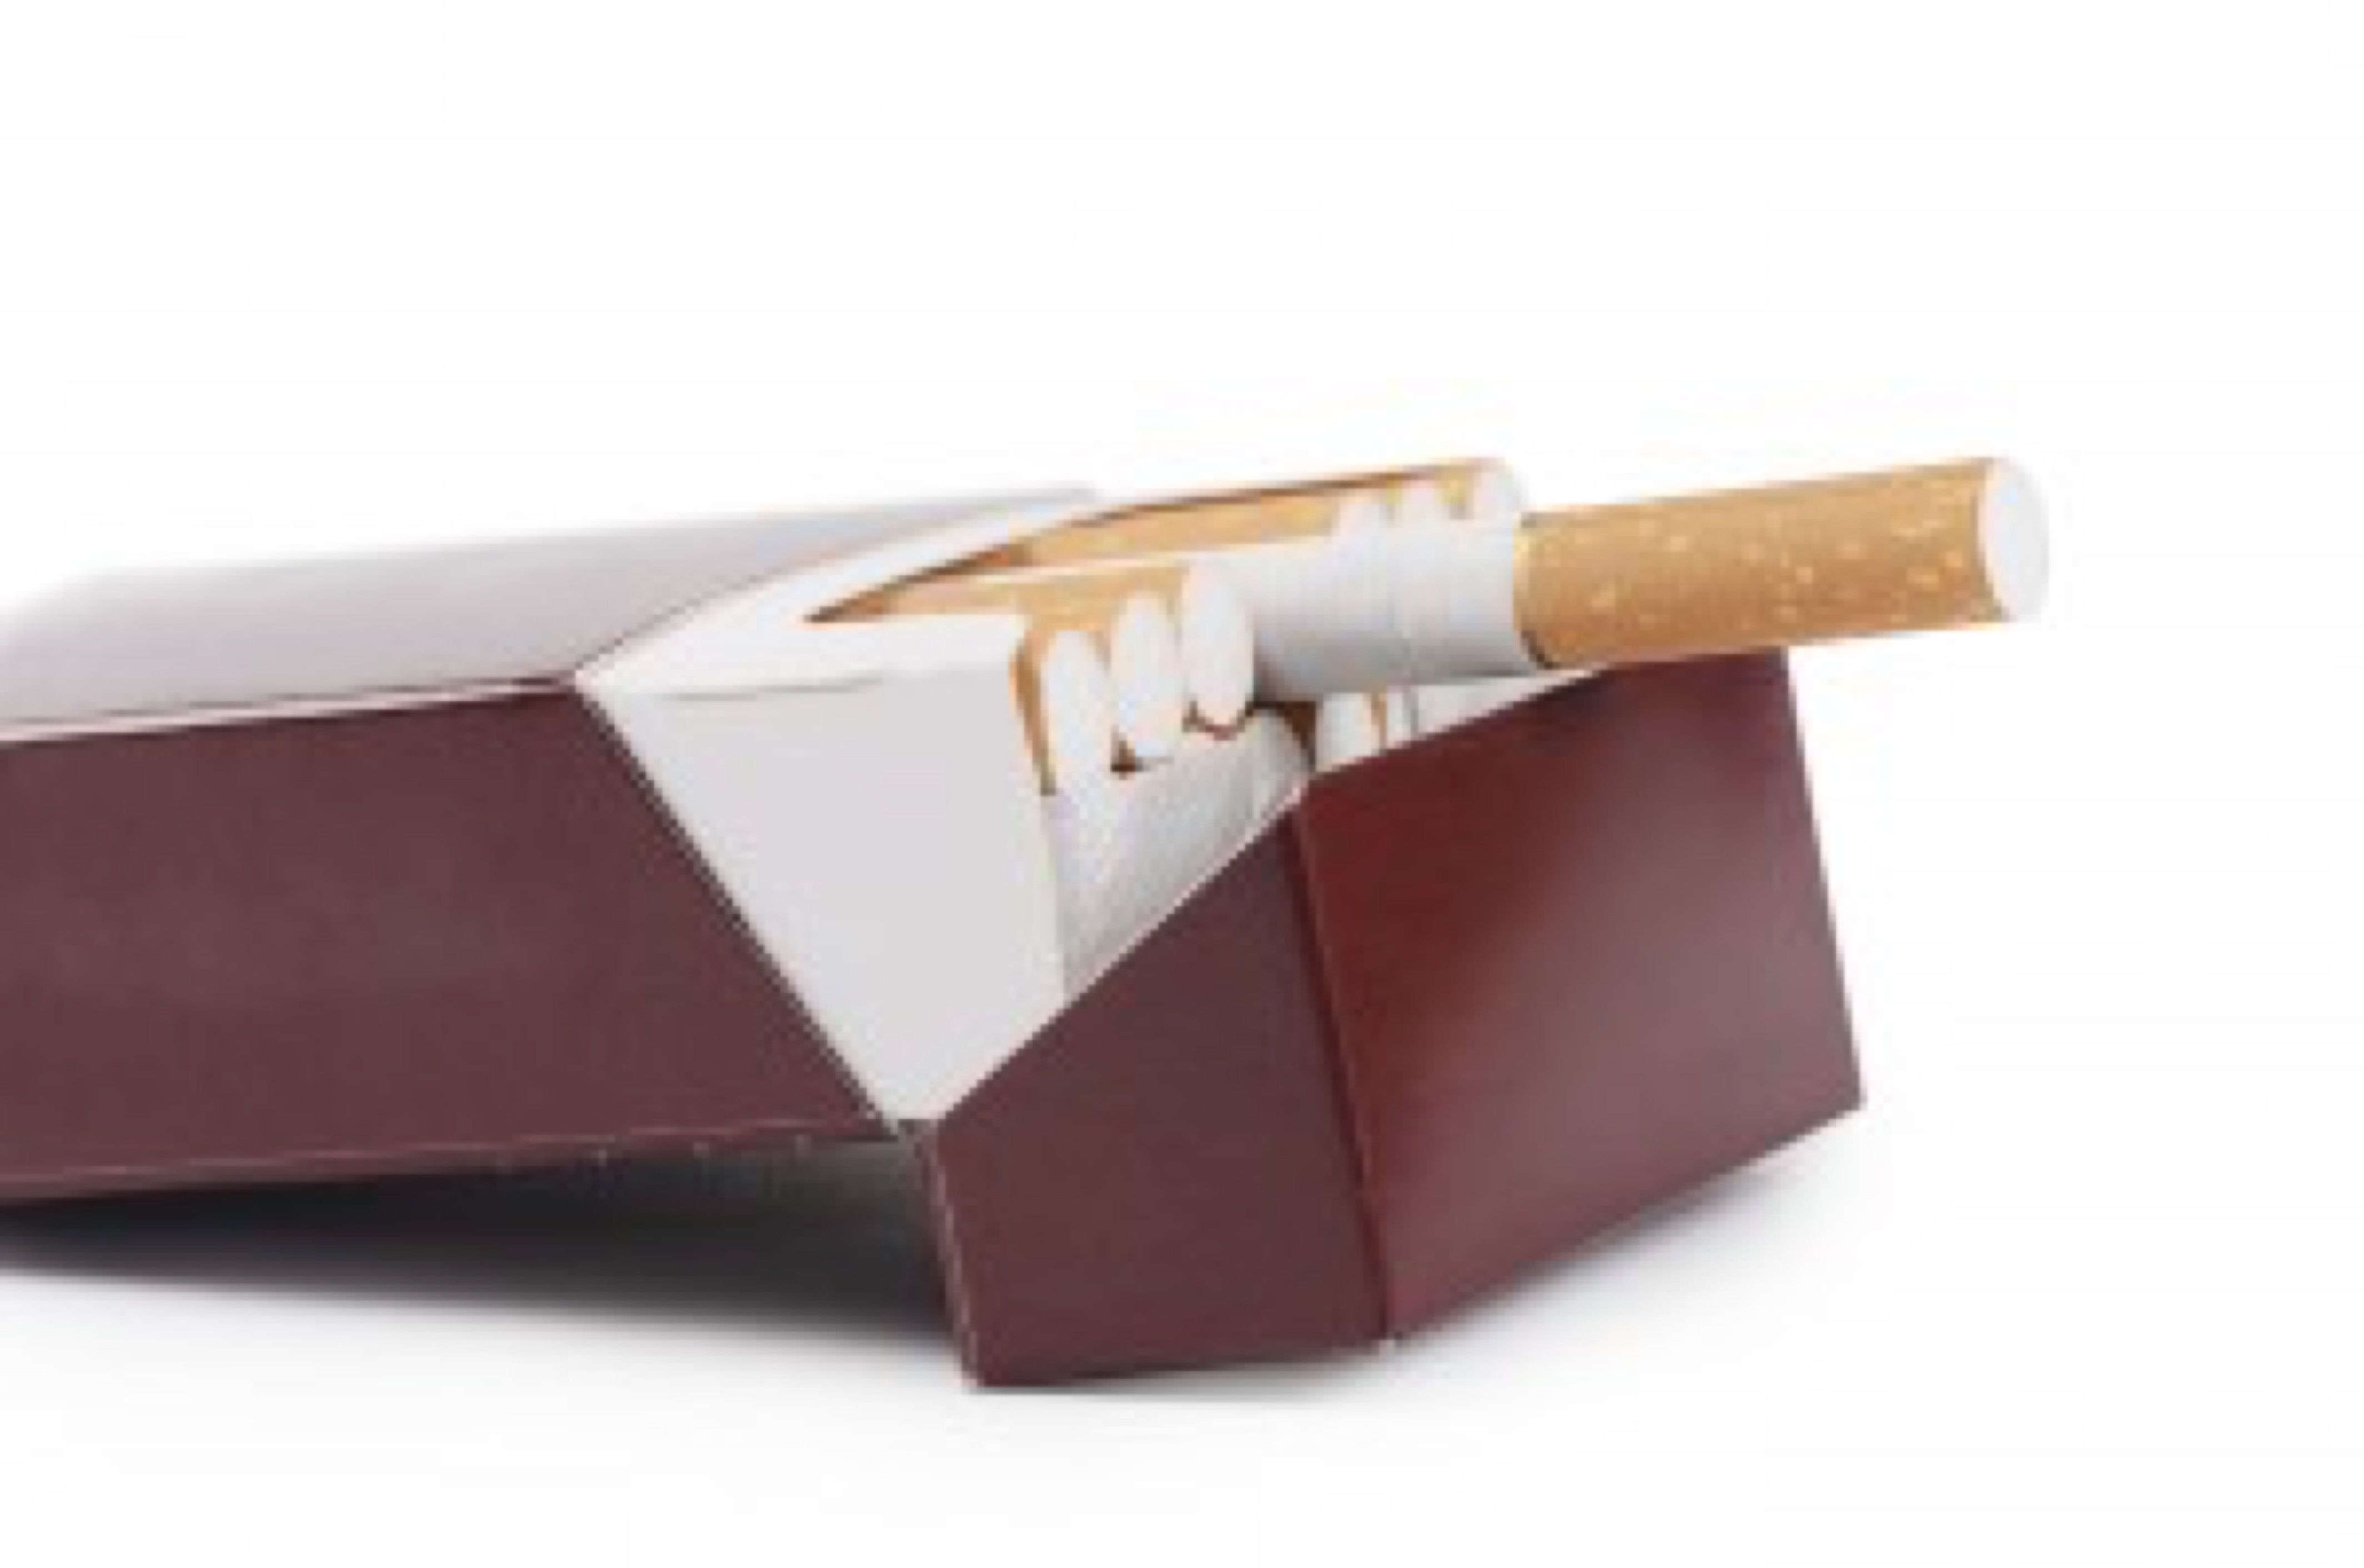 Box of cigarettes isolated on a white